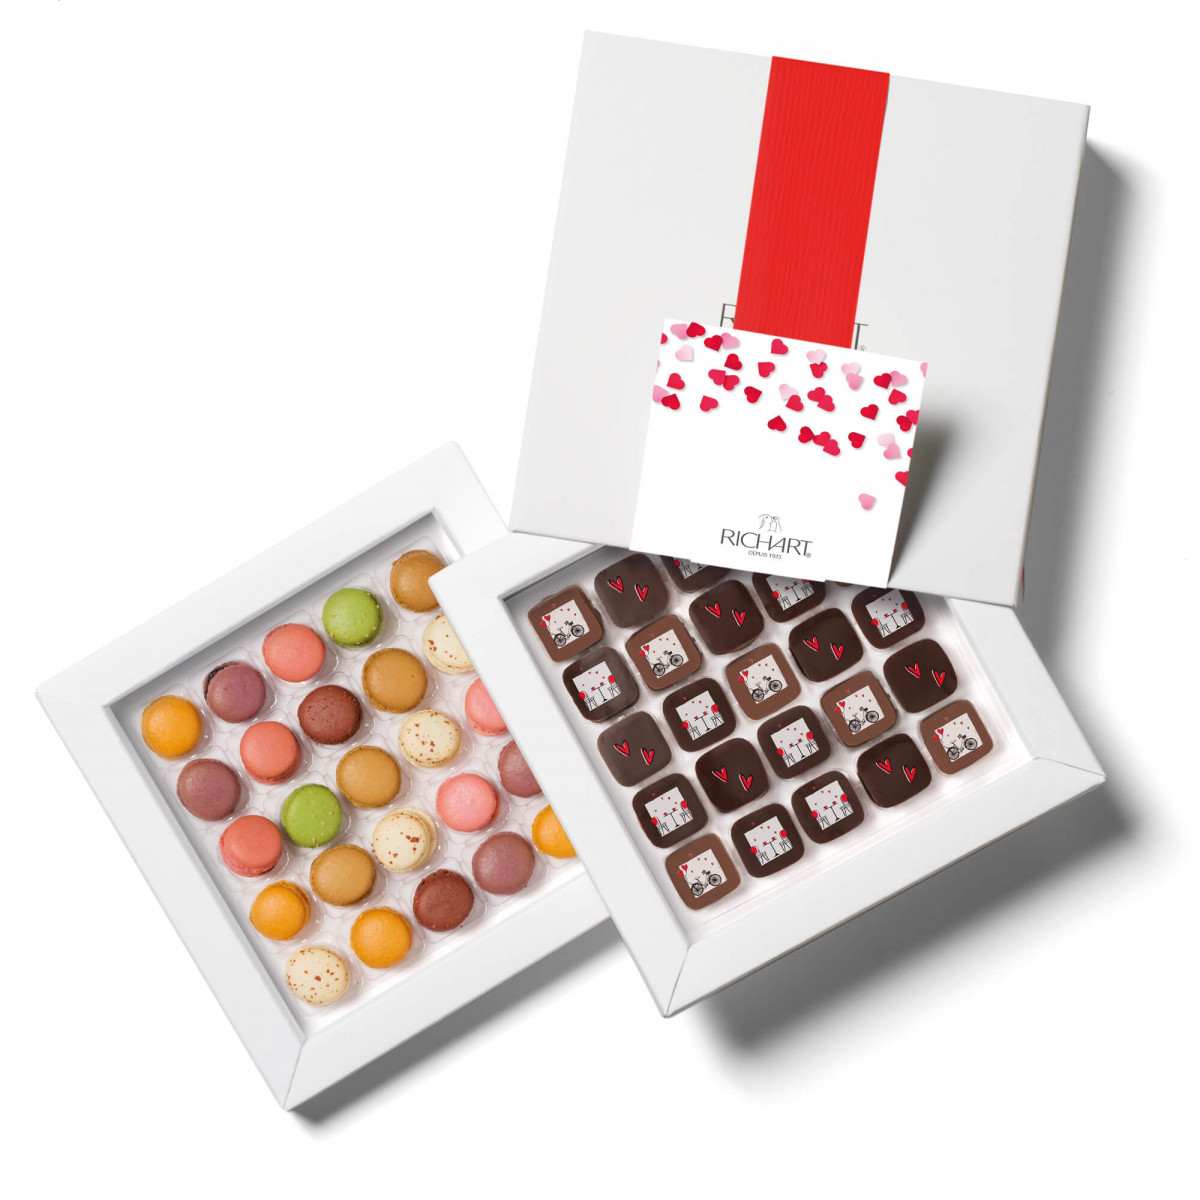 RICHART Chocolates - Love at First Sight Box with 25 Valentine's Day filled chocolates and 25 mini-macarons